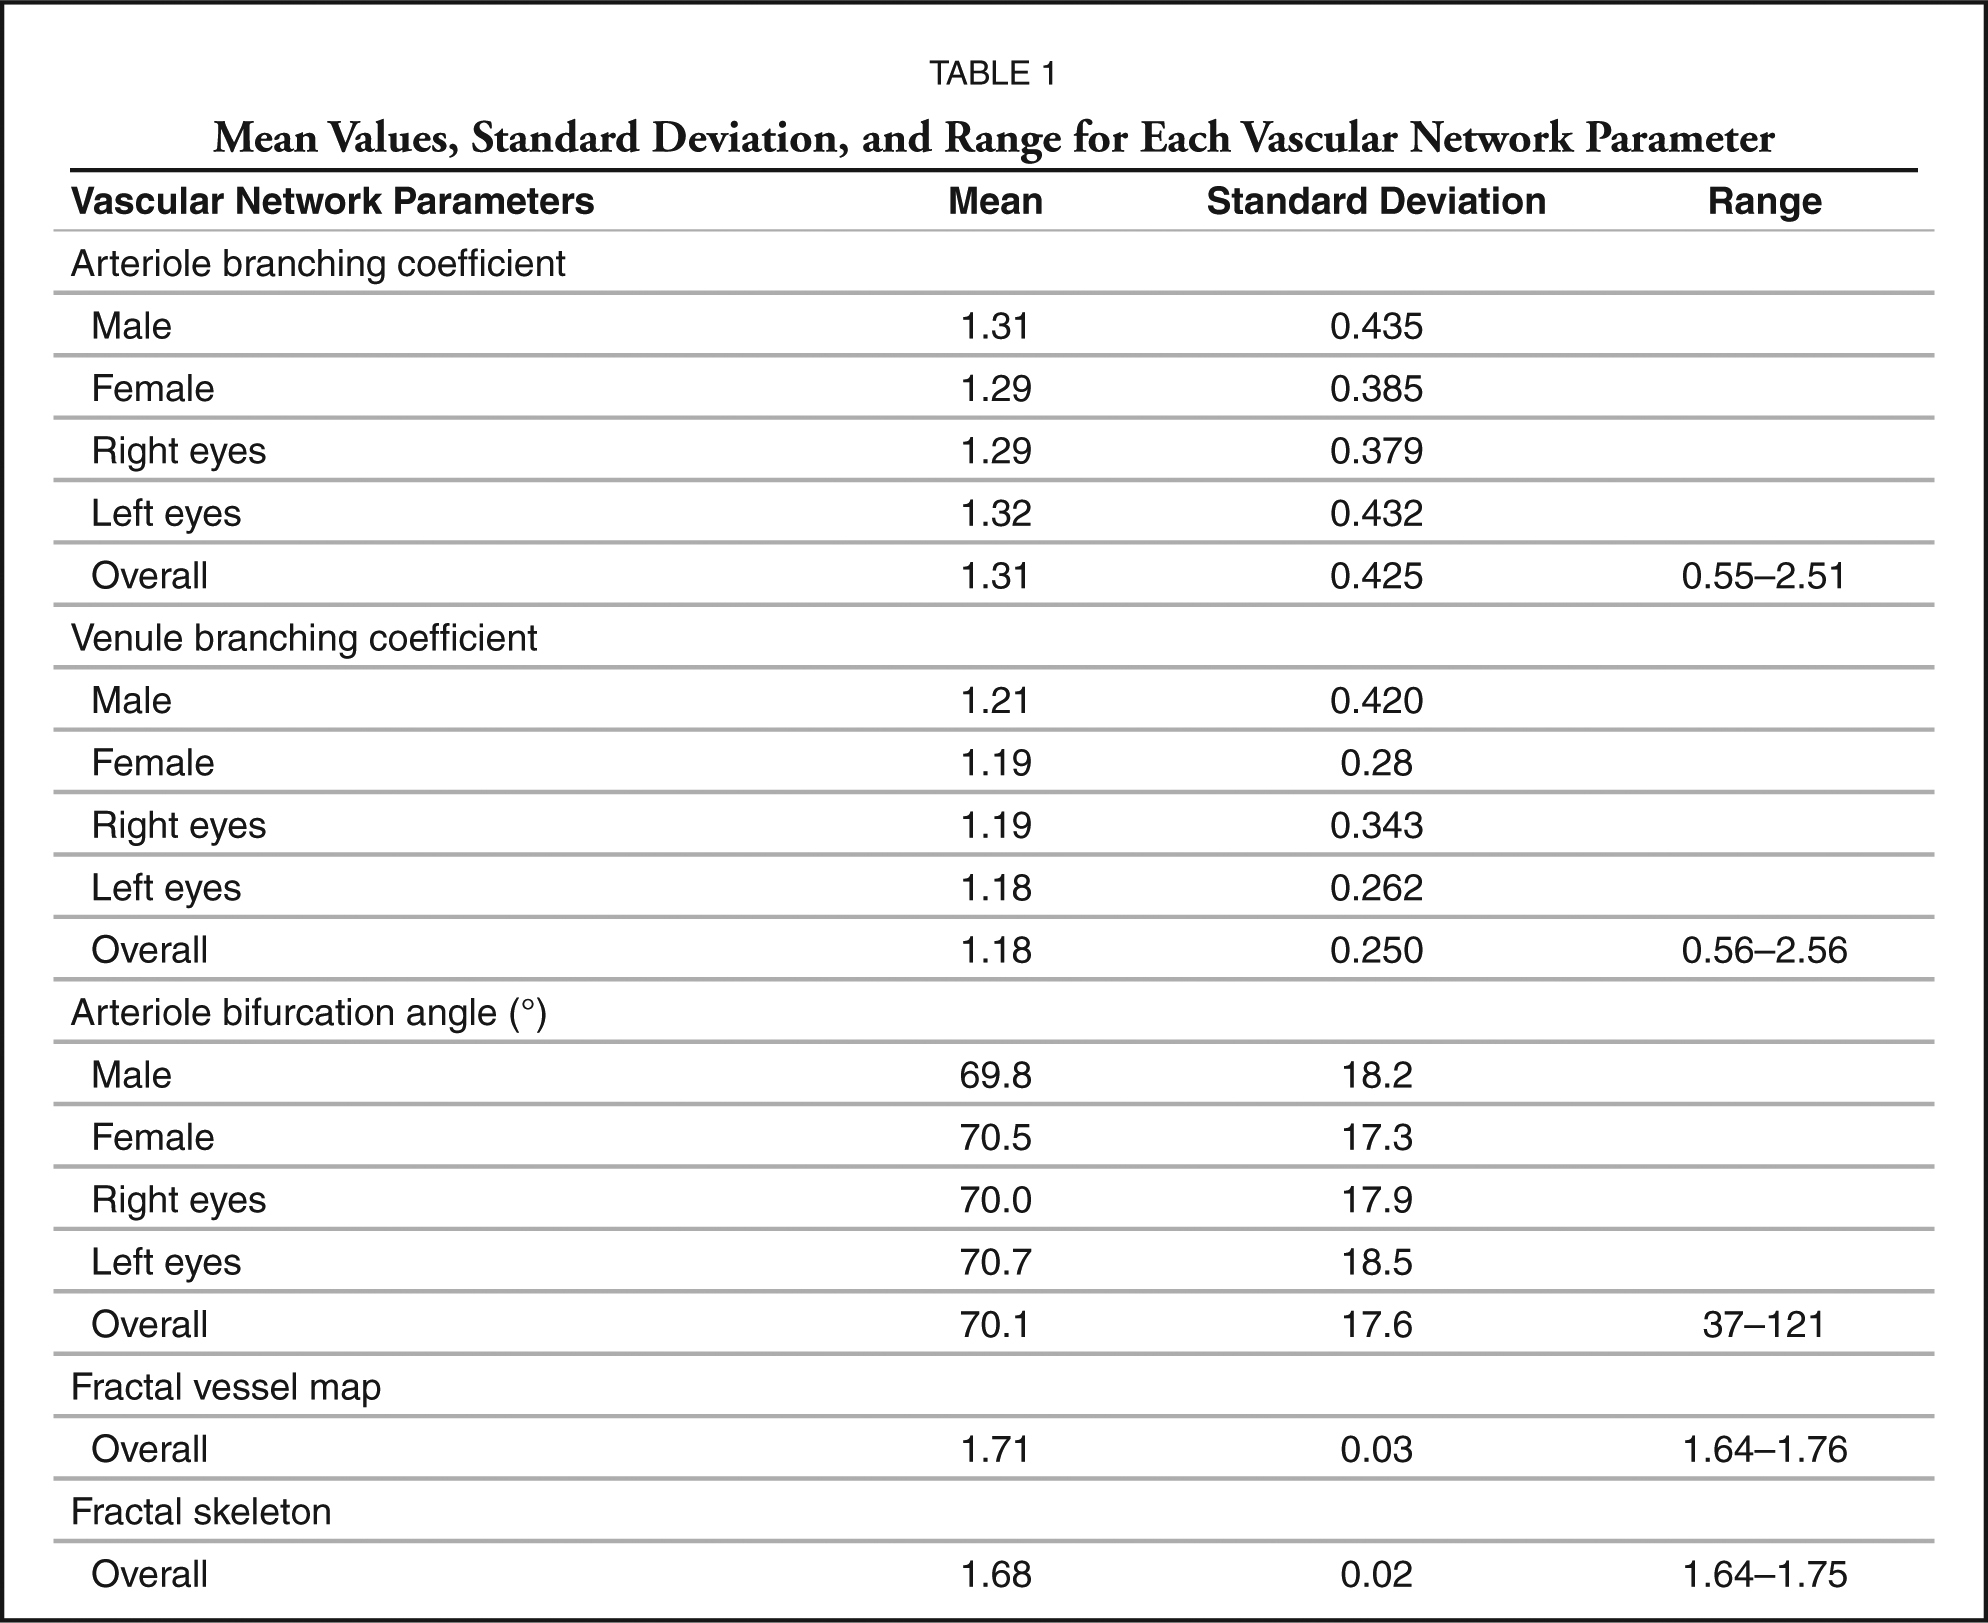 Mean Values, Standard Deviation, and Range for Each Vascular Network Parameter